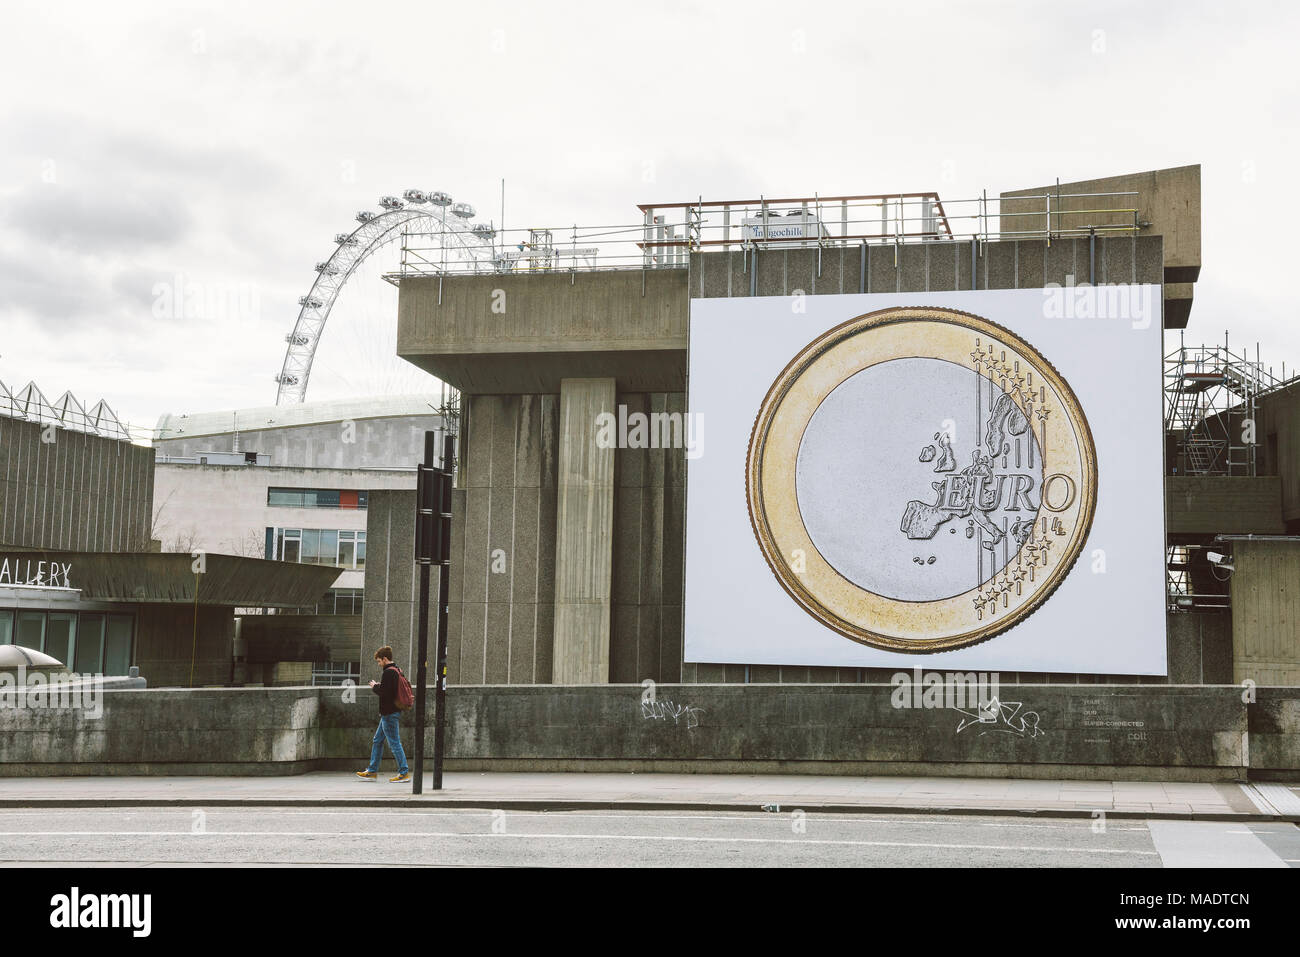 EURO billboard illustrating Euro coin is hanging on the exterior wall outside Queen Elizabeth Hall and Purcell Room building in London, UK. - Stock Image